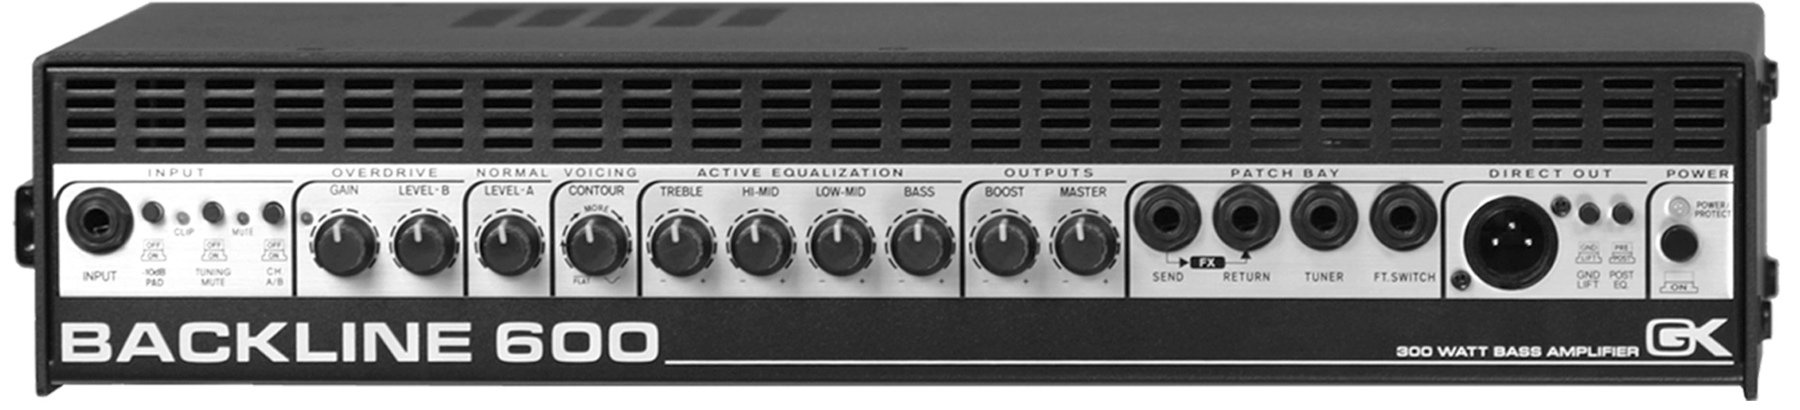 GK Backline 600 - 300W Bass Head